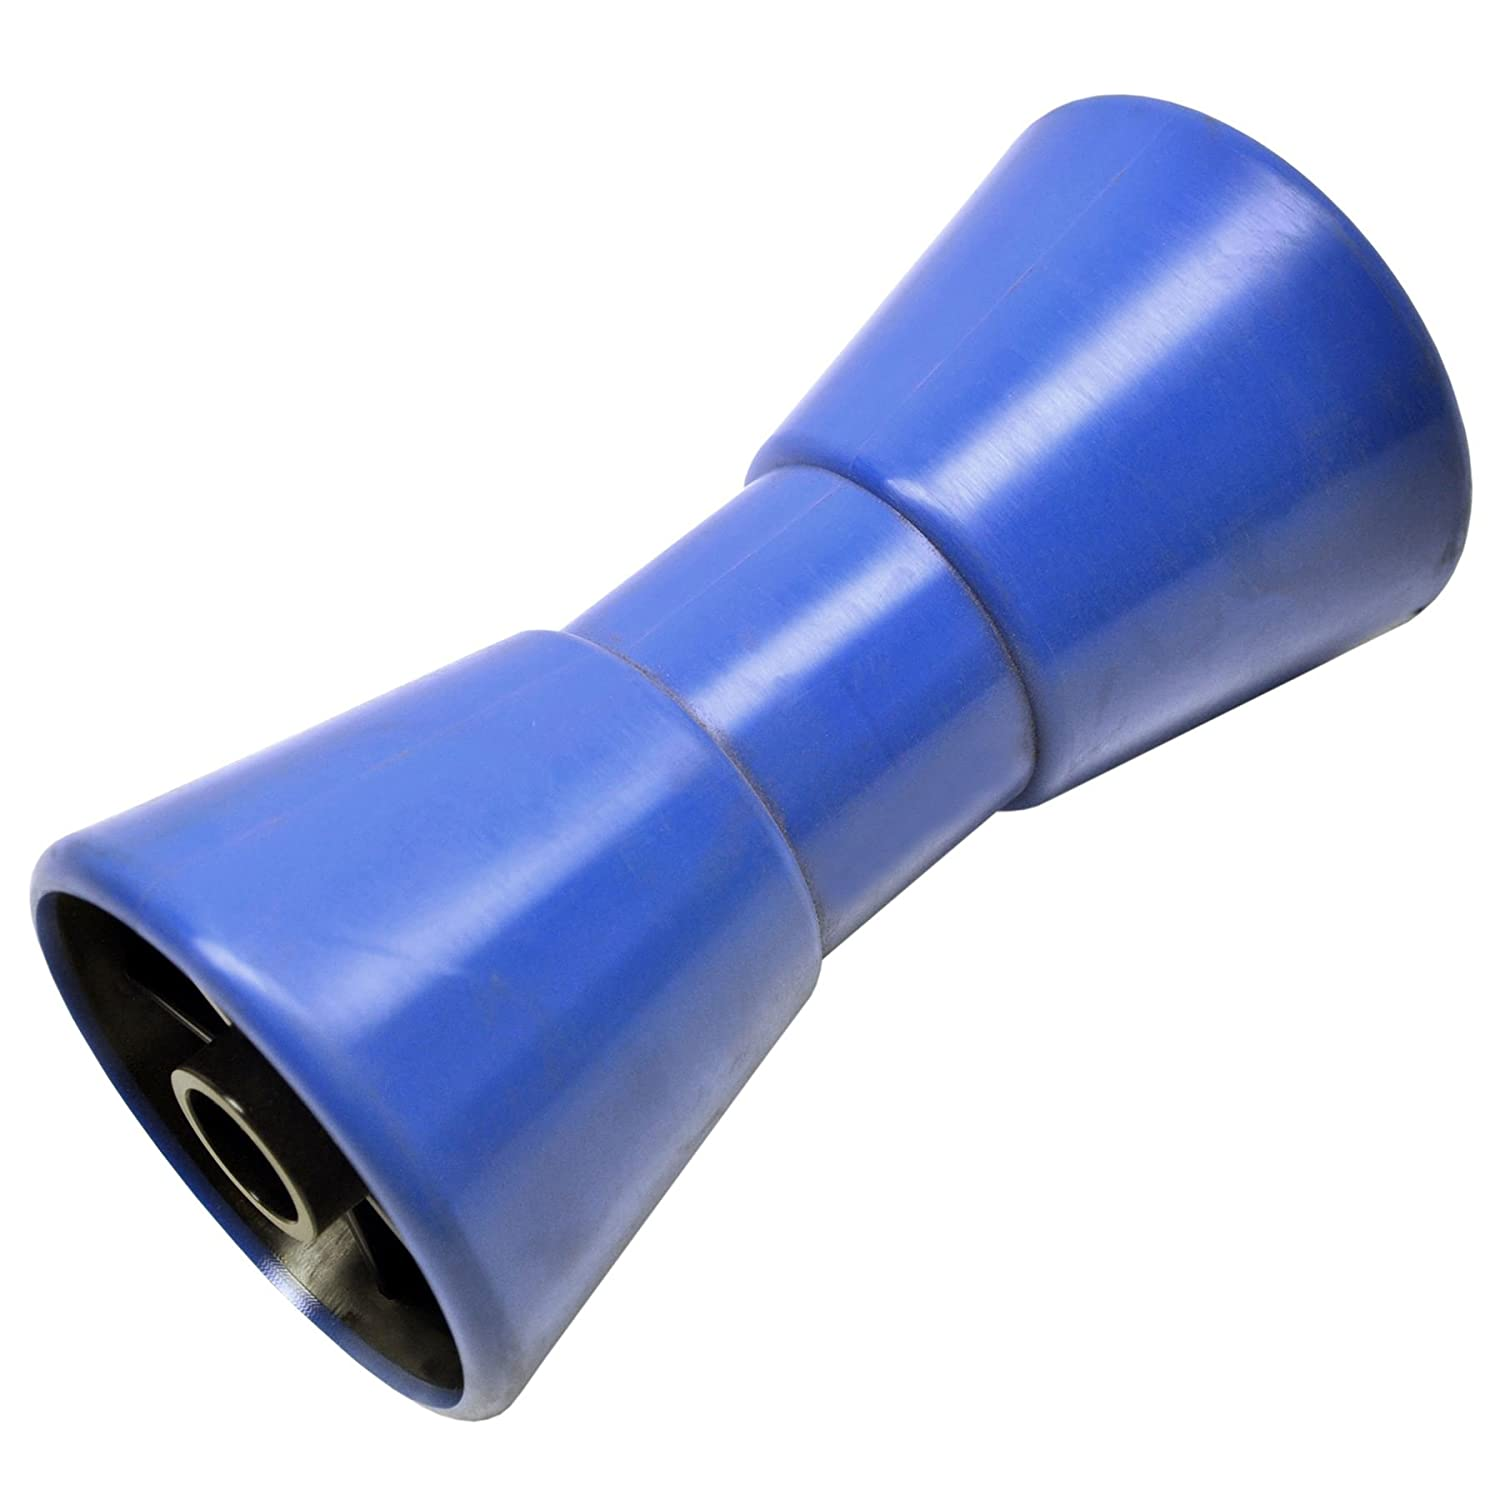 B Blesiya Motorcycle Funnel w//Soft Pipe Pour Fuel Oil Petrol Water Universal